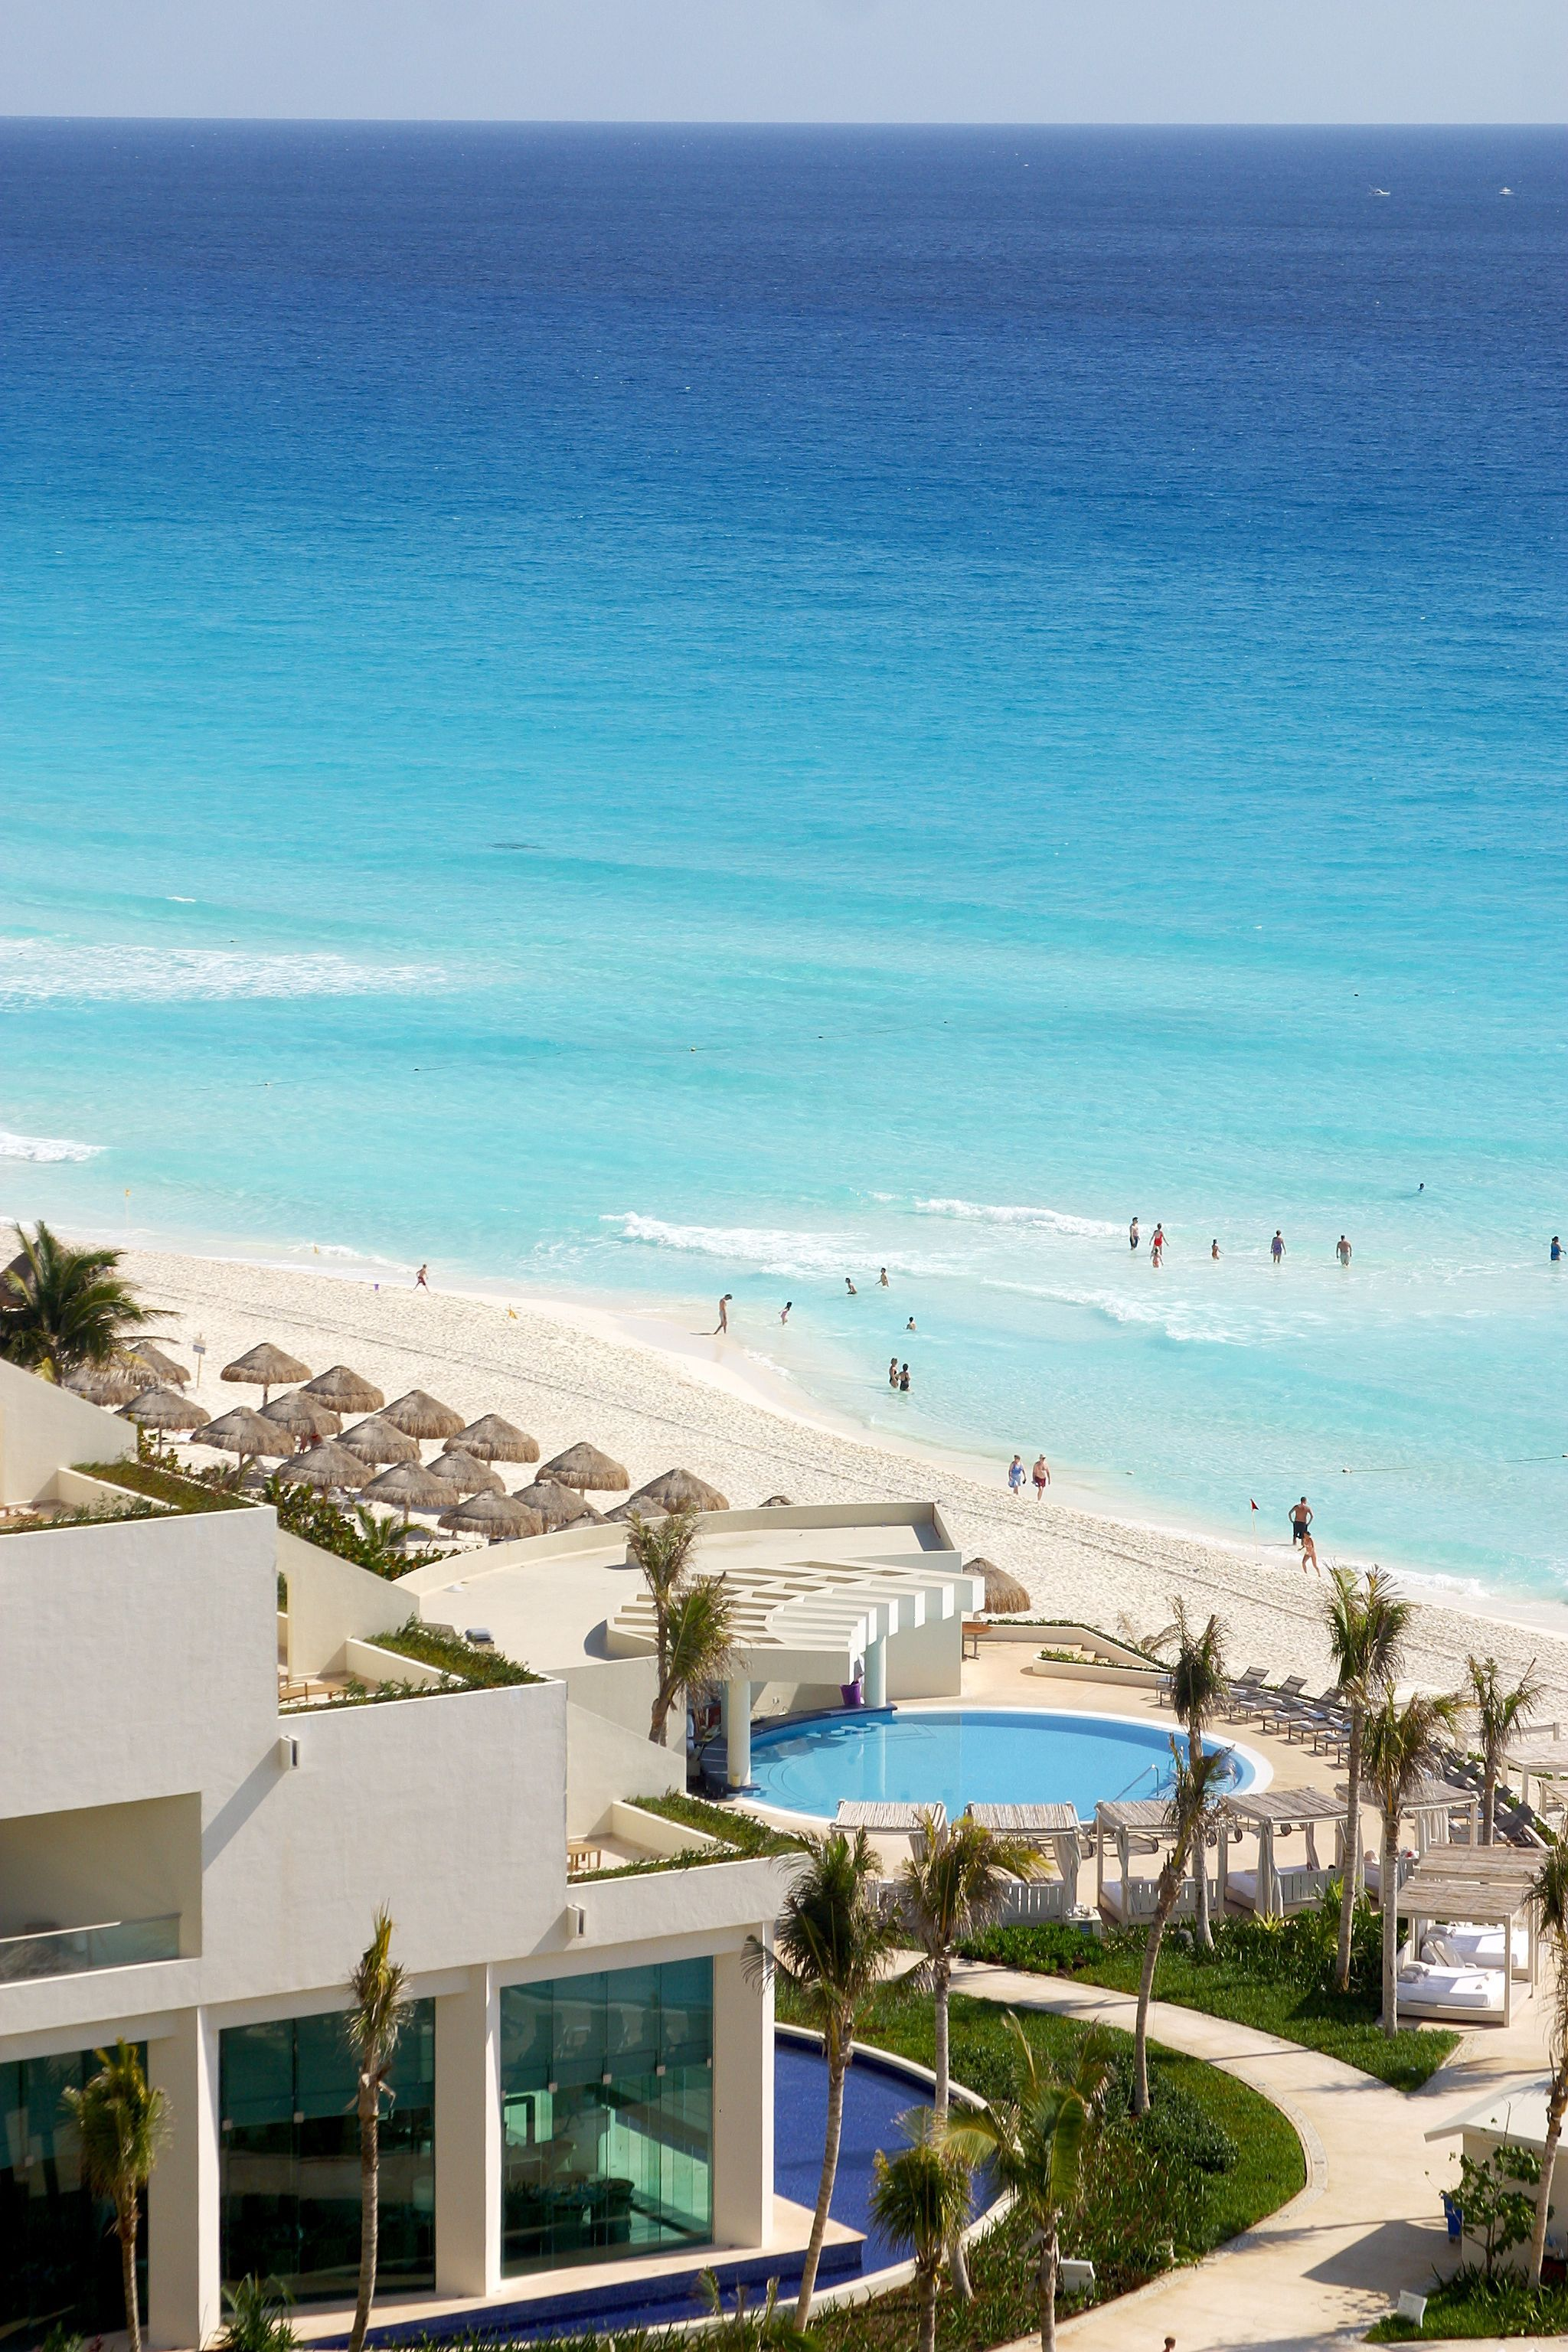 8 Day 7 Night Resort Vacation Certificate For Cancun Mexico To